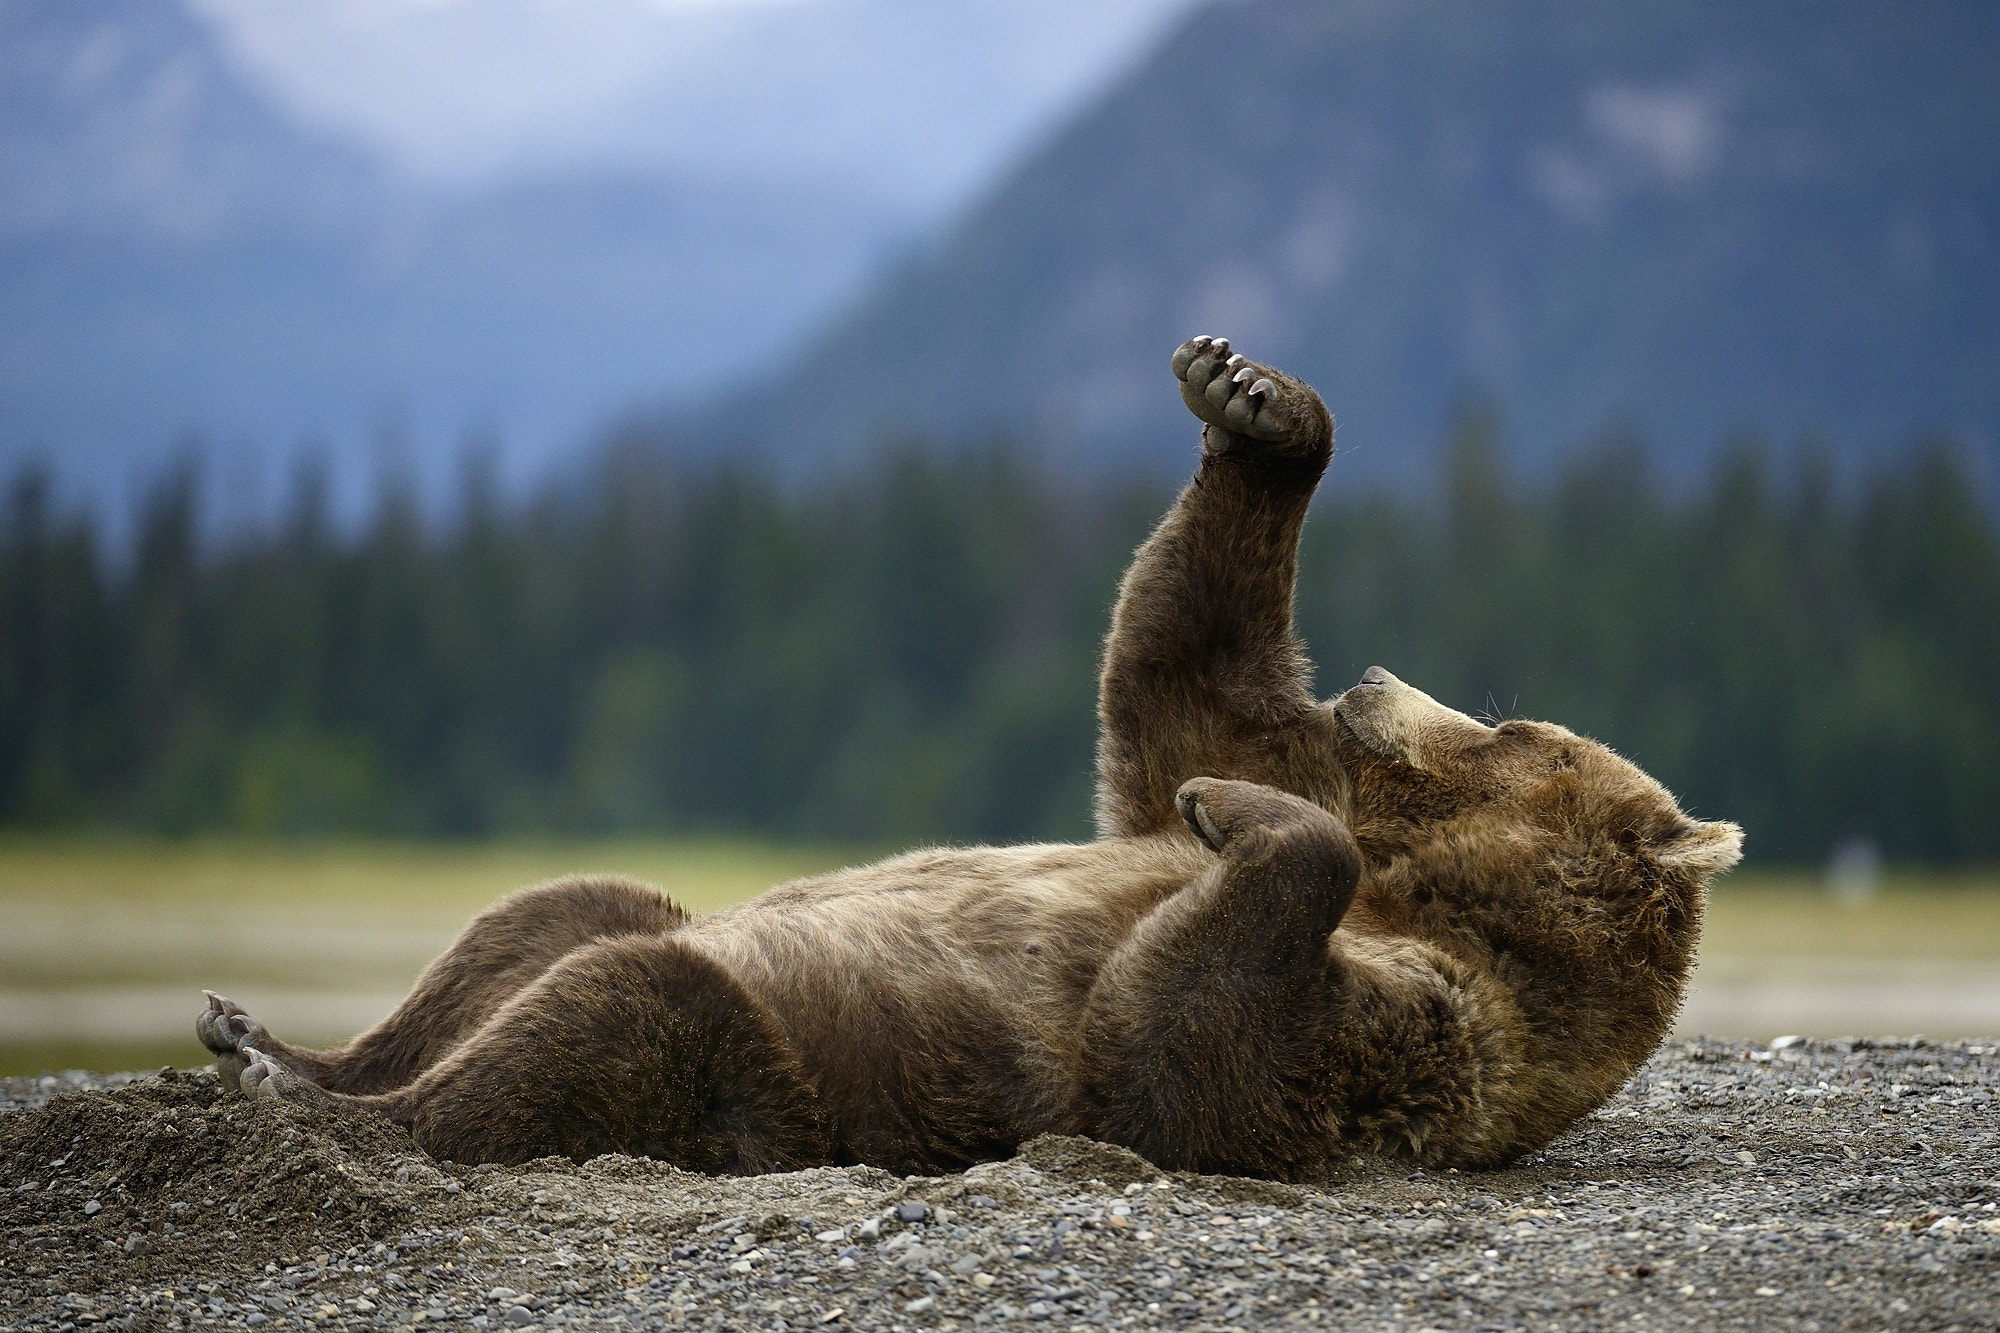 Photograph Boxing Bear by Olav  Thokle on 500px